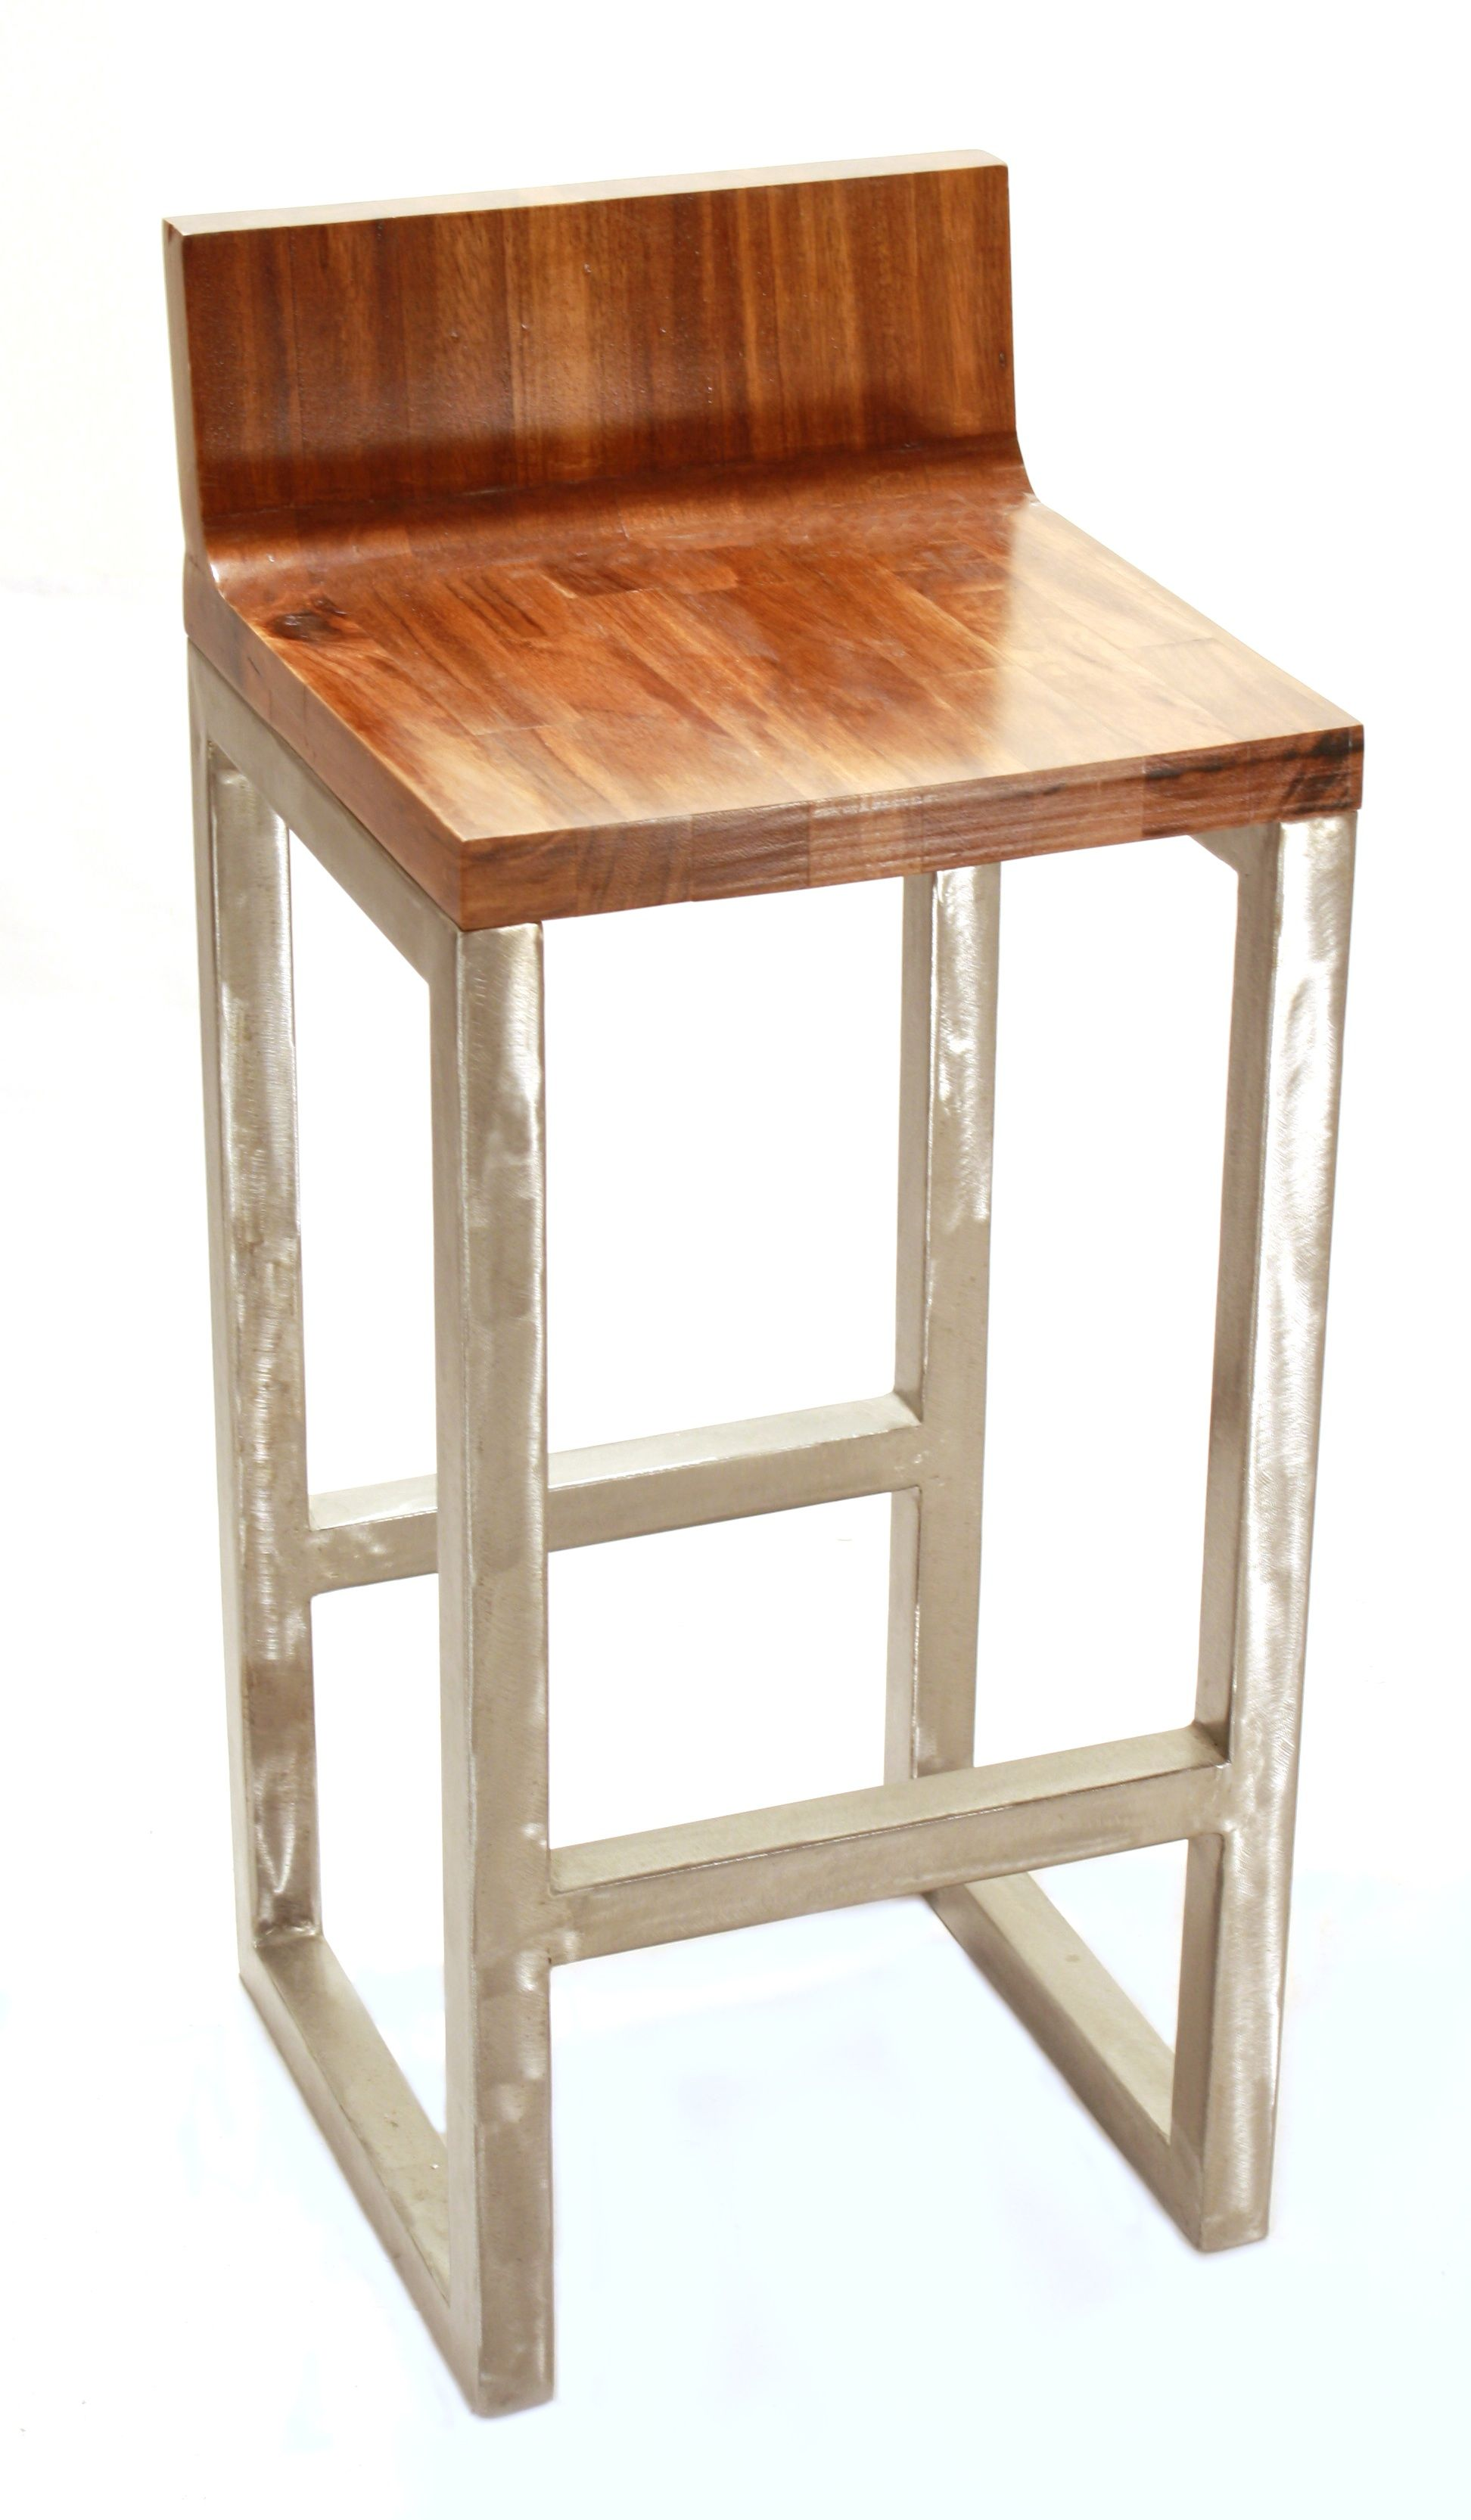 stools palazzo tall bar stool set of cfm product extra home scale hayneedle finley rectangle